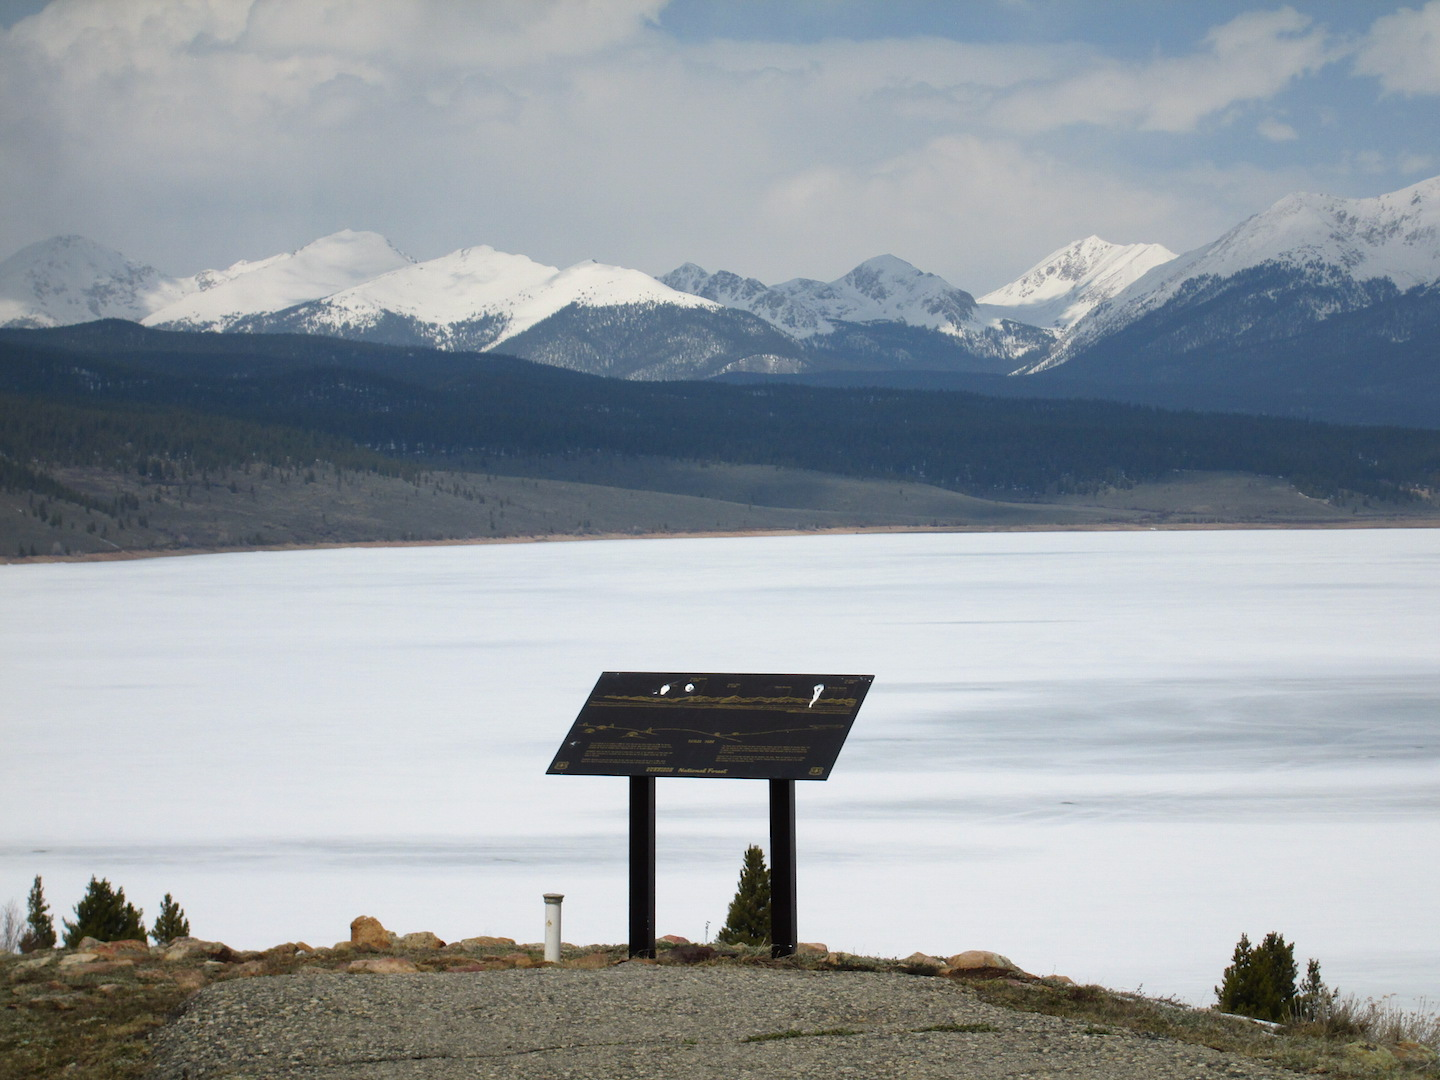 Taylor Reservoir still iced over on April 22, with virtually snow-free shoreline and adjacent south- and east-facing slopes.  The west slopes of the Sawatch Range, on the other hand, appeared heavily covered in the recent 'clean' new snow, down to and below treeline.